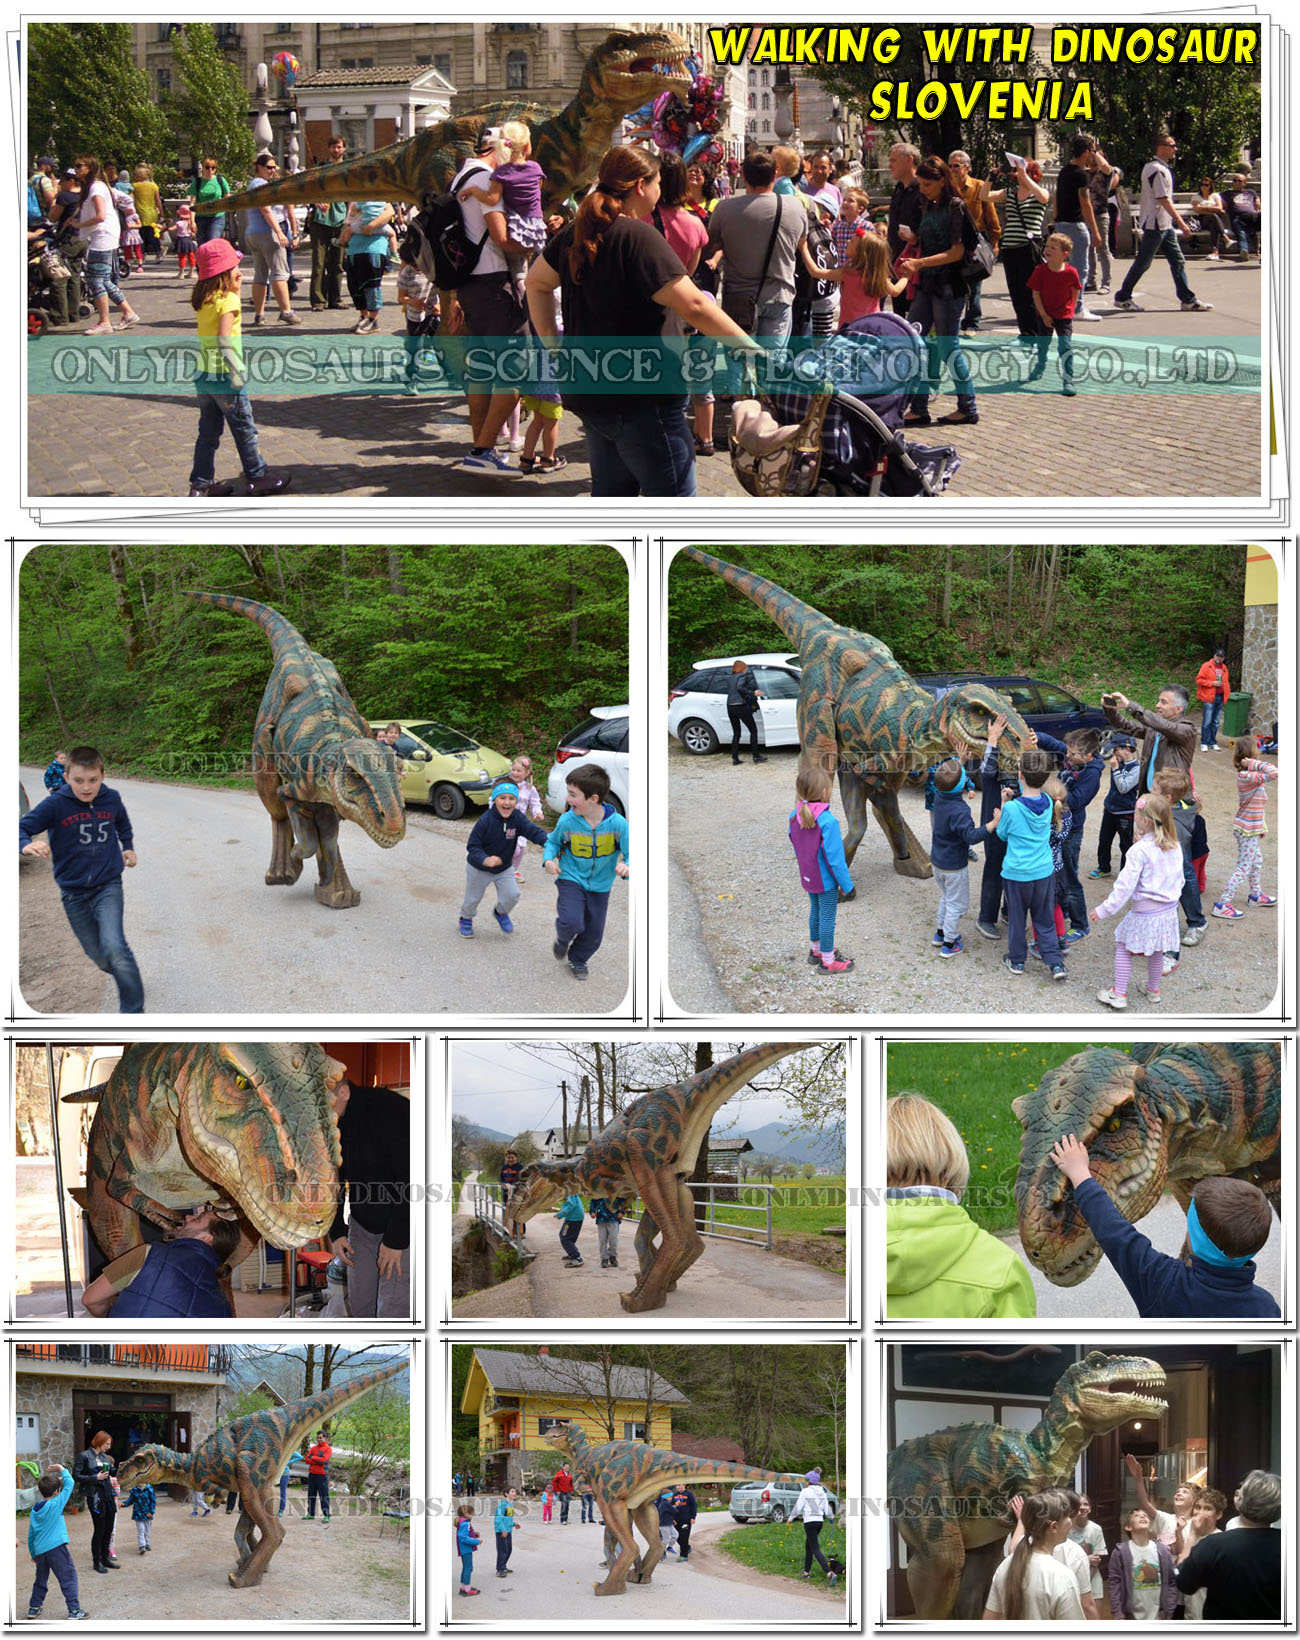 Walking Dinosaur Show in Slovenia